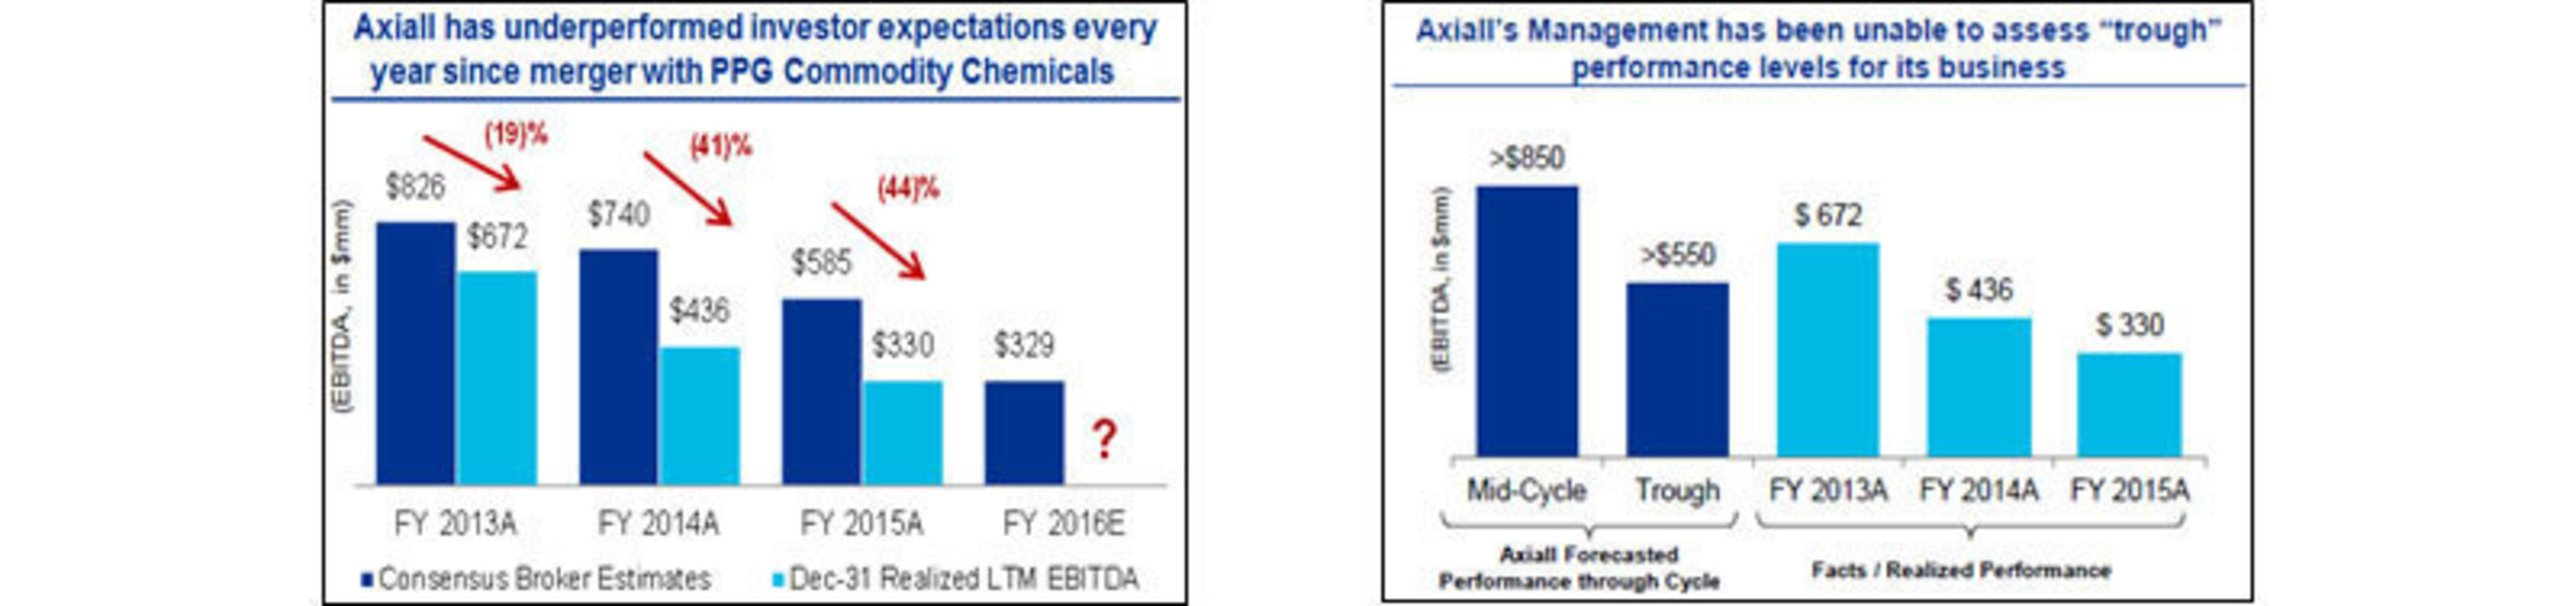 Source: See Westlake Investor Presentation April 25, 2016 (http://westlakeaxiall.acquisitionproposal.com/)